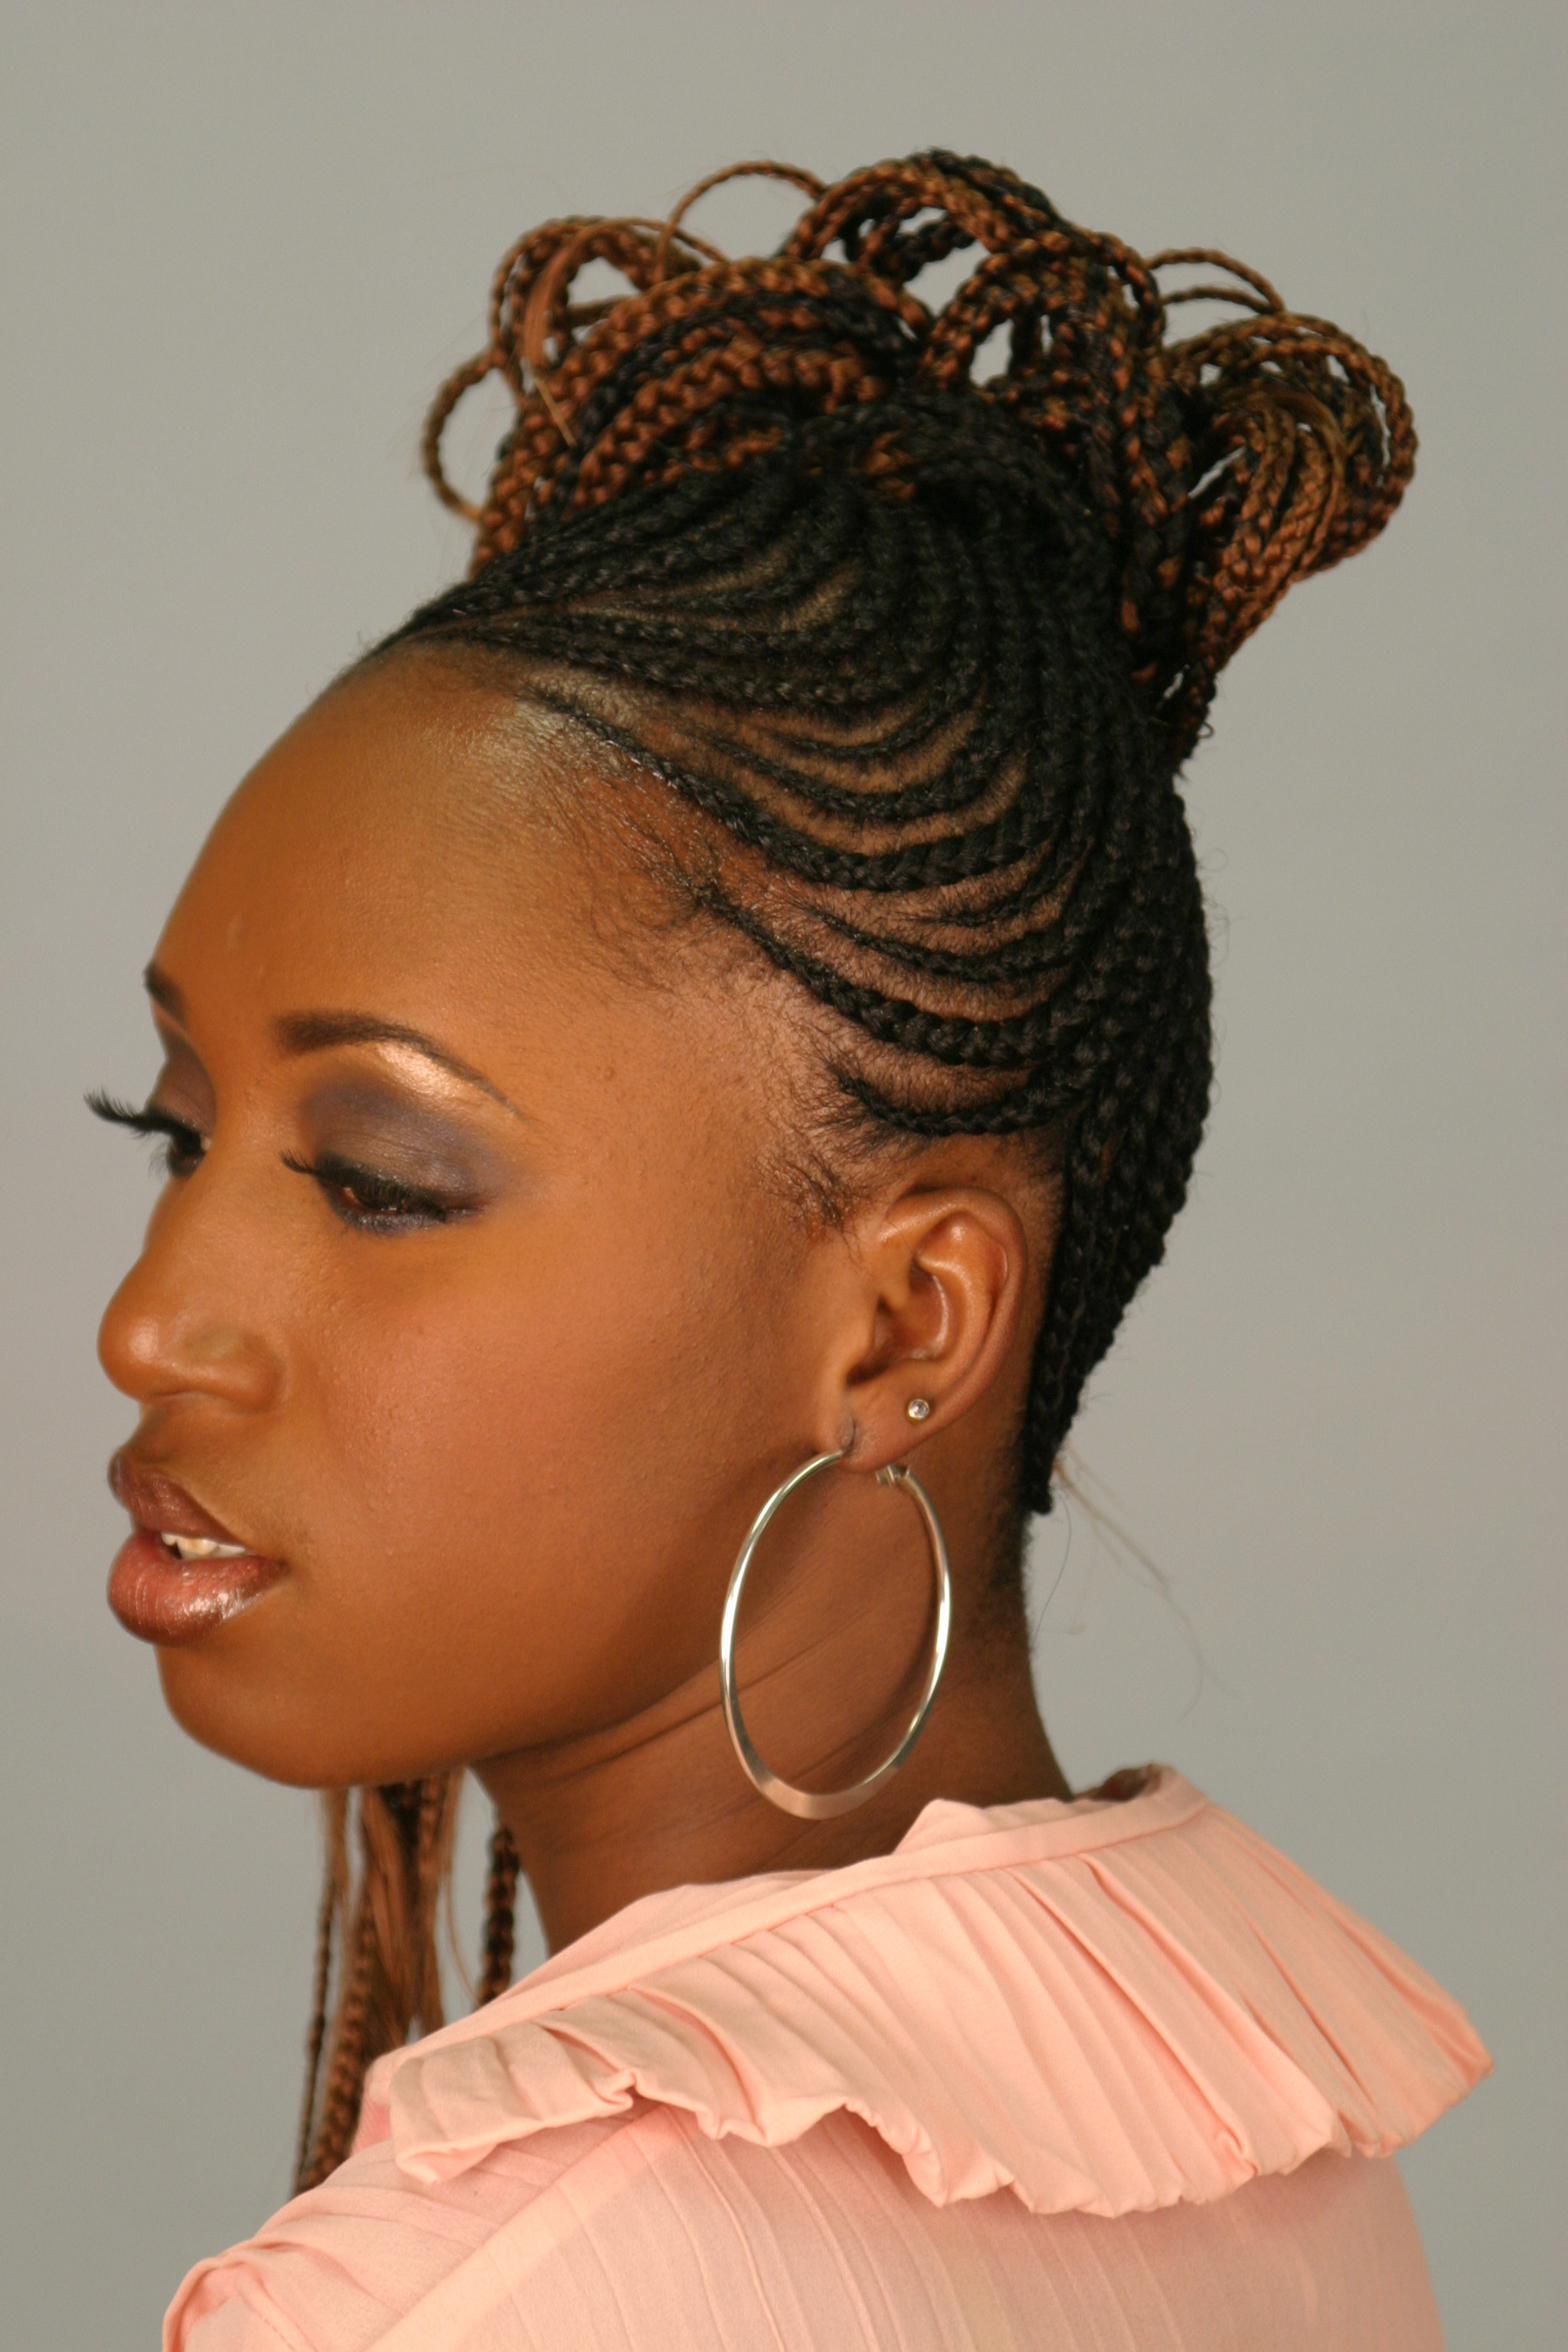 Cornrow Braid Hairstyles  30 Cornrow Hairstyles Ideas for Black Women MagMent